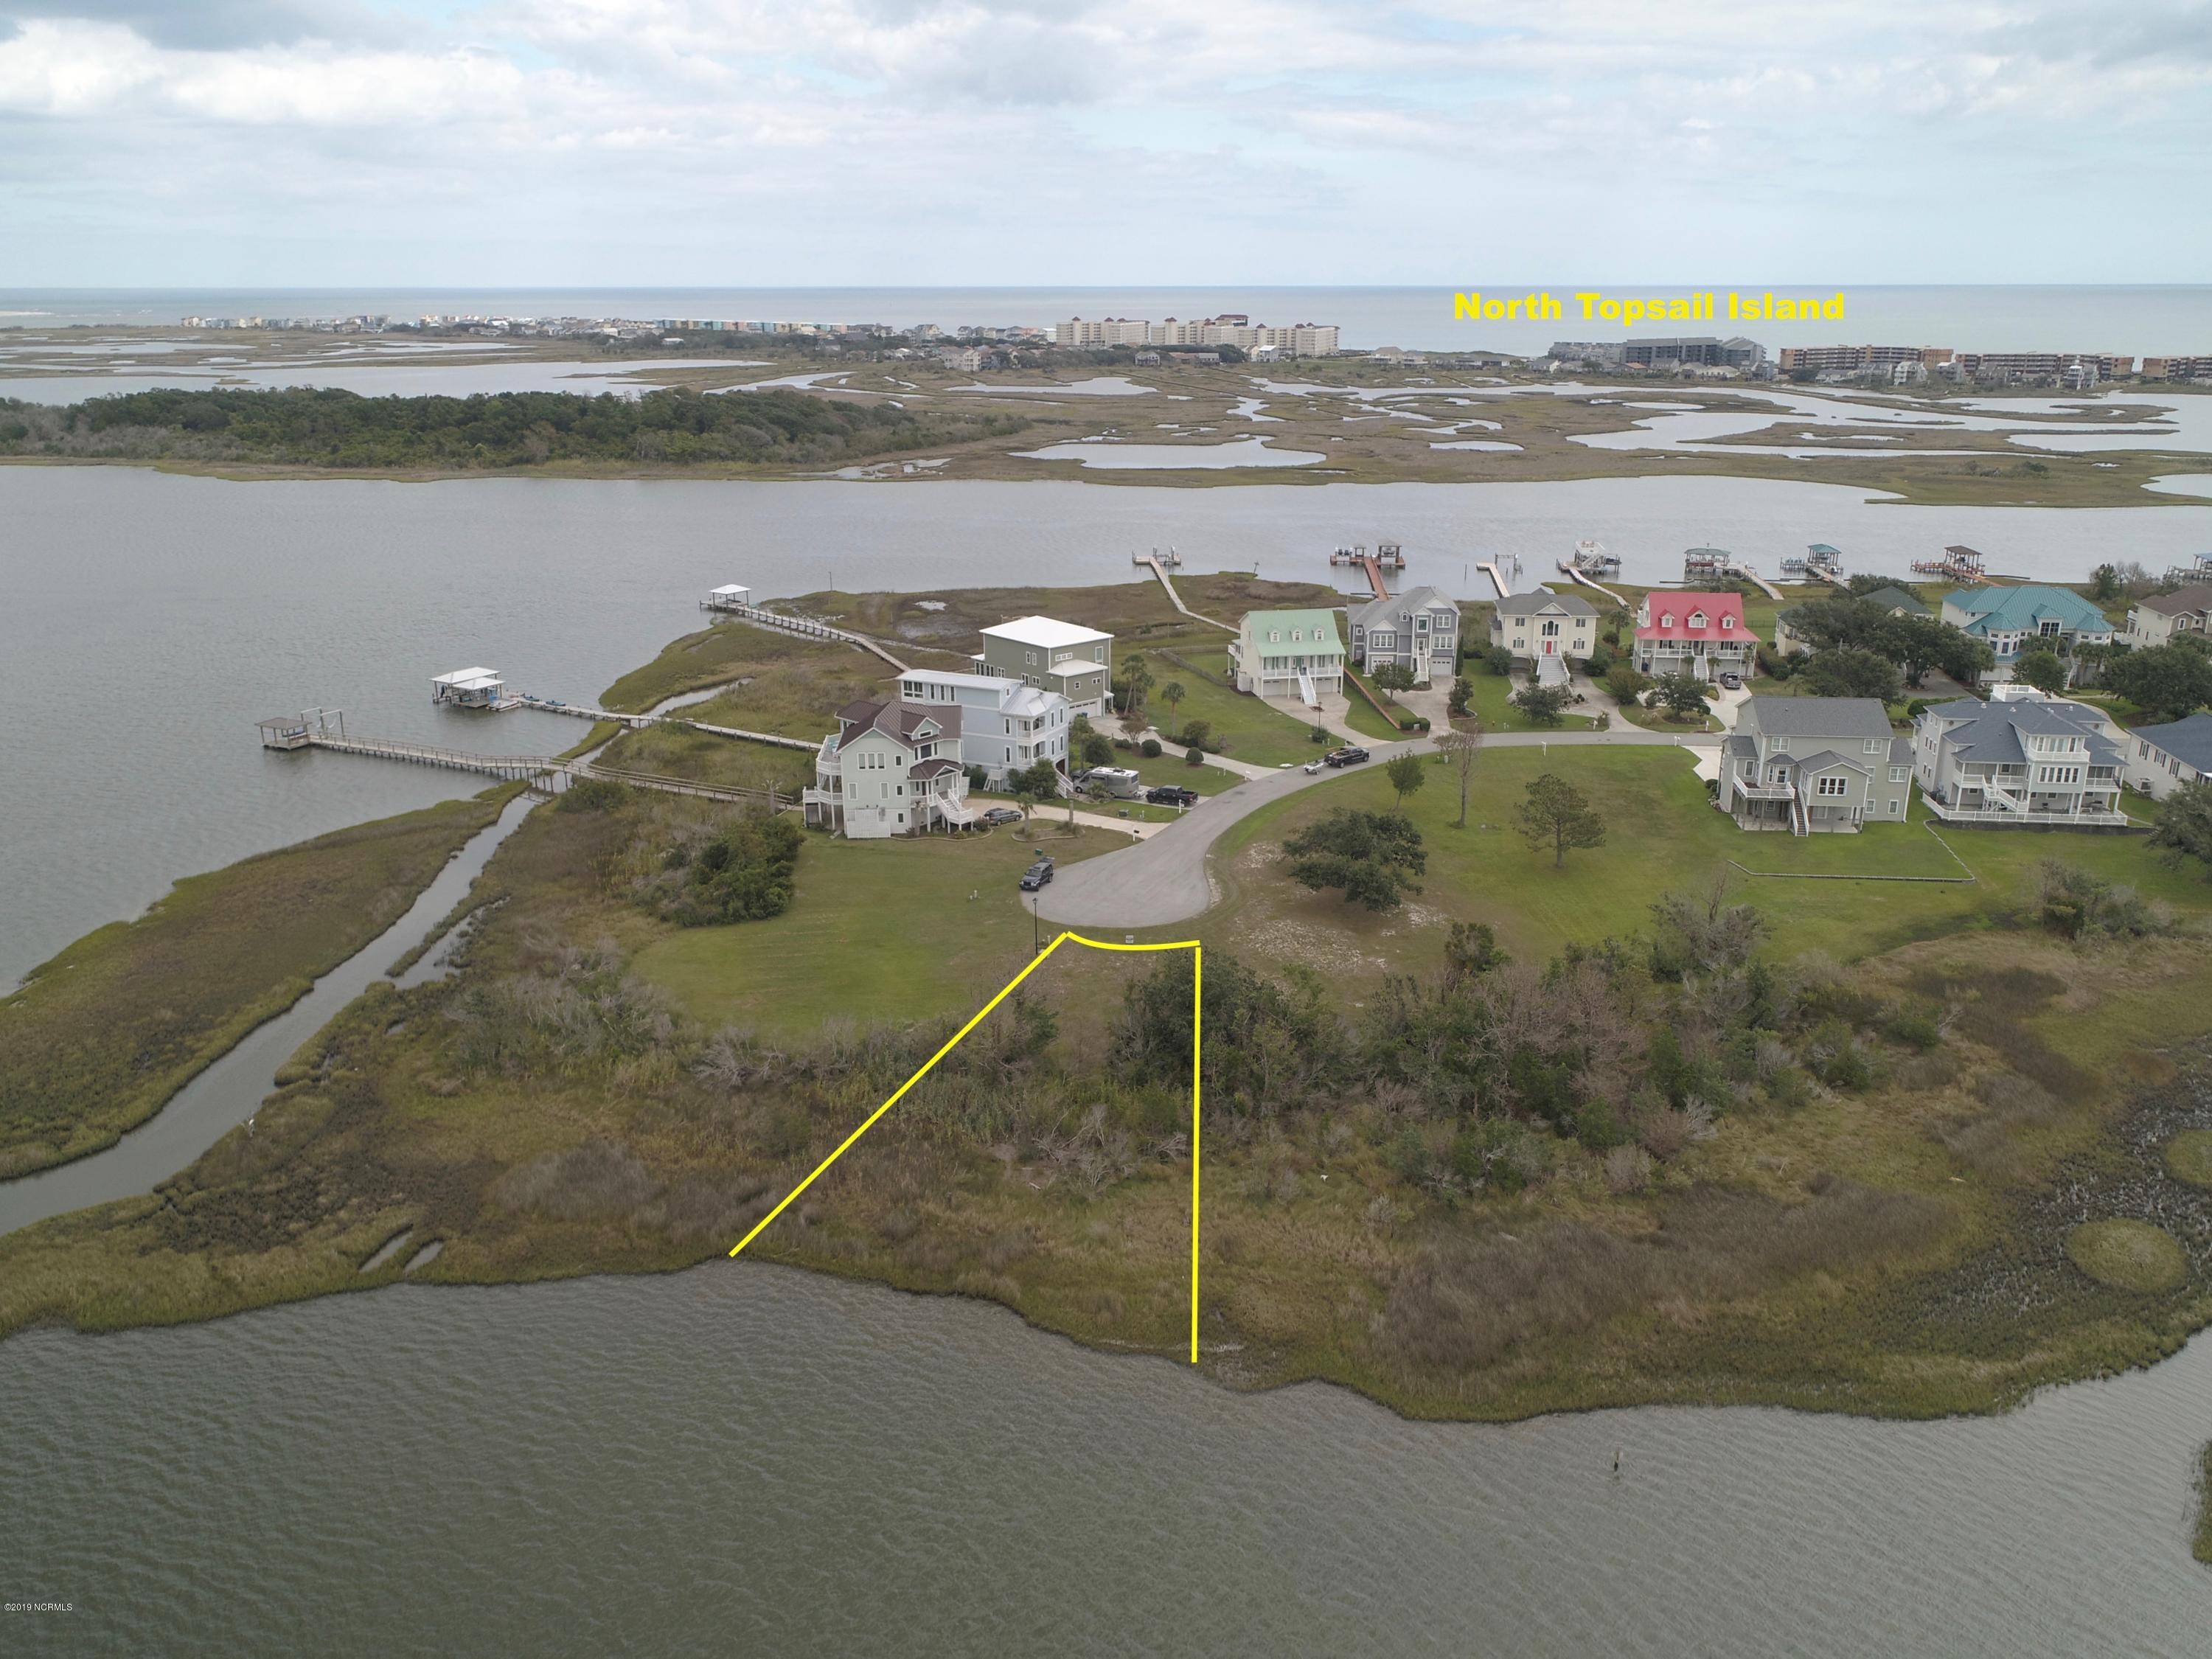 120 feet of WATERFRONT living on Chadwick Bay in the upscale community of Pelican Point! This beautiful building lot is located in Sneads Ferry, with easy access to the Intracoastal Waterway and within minutes to the beaches of Topsail Island.